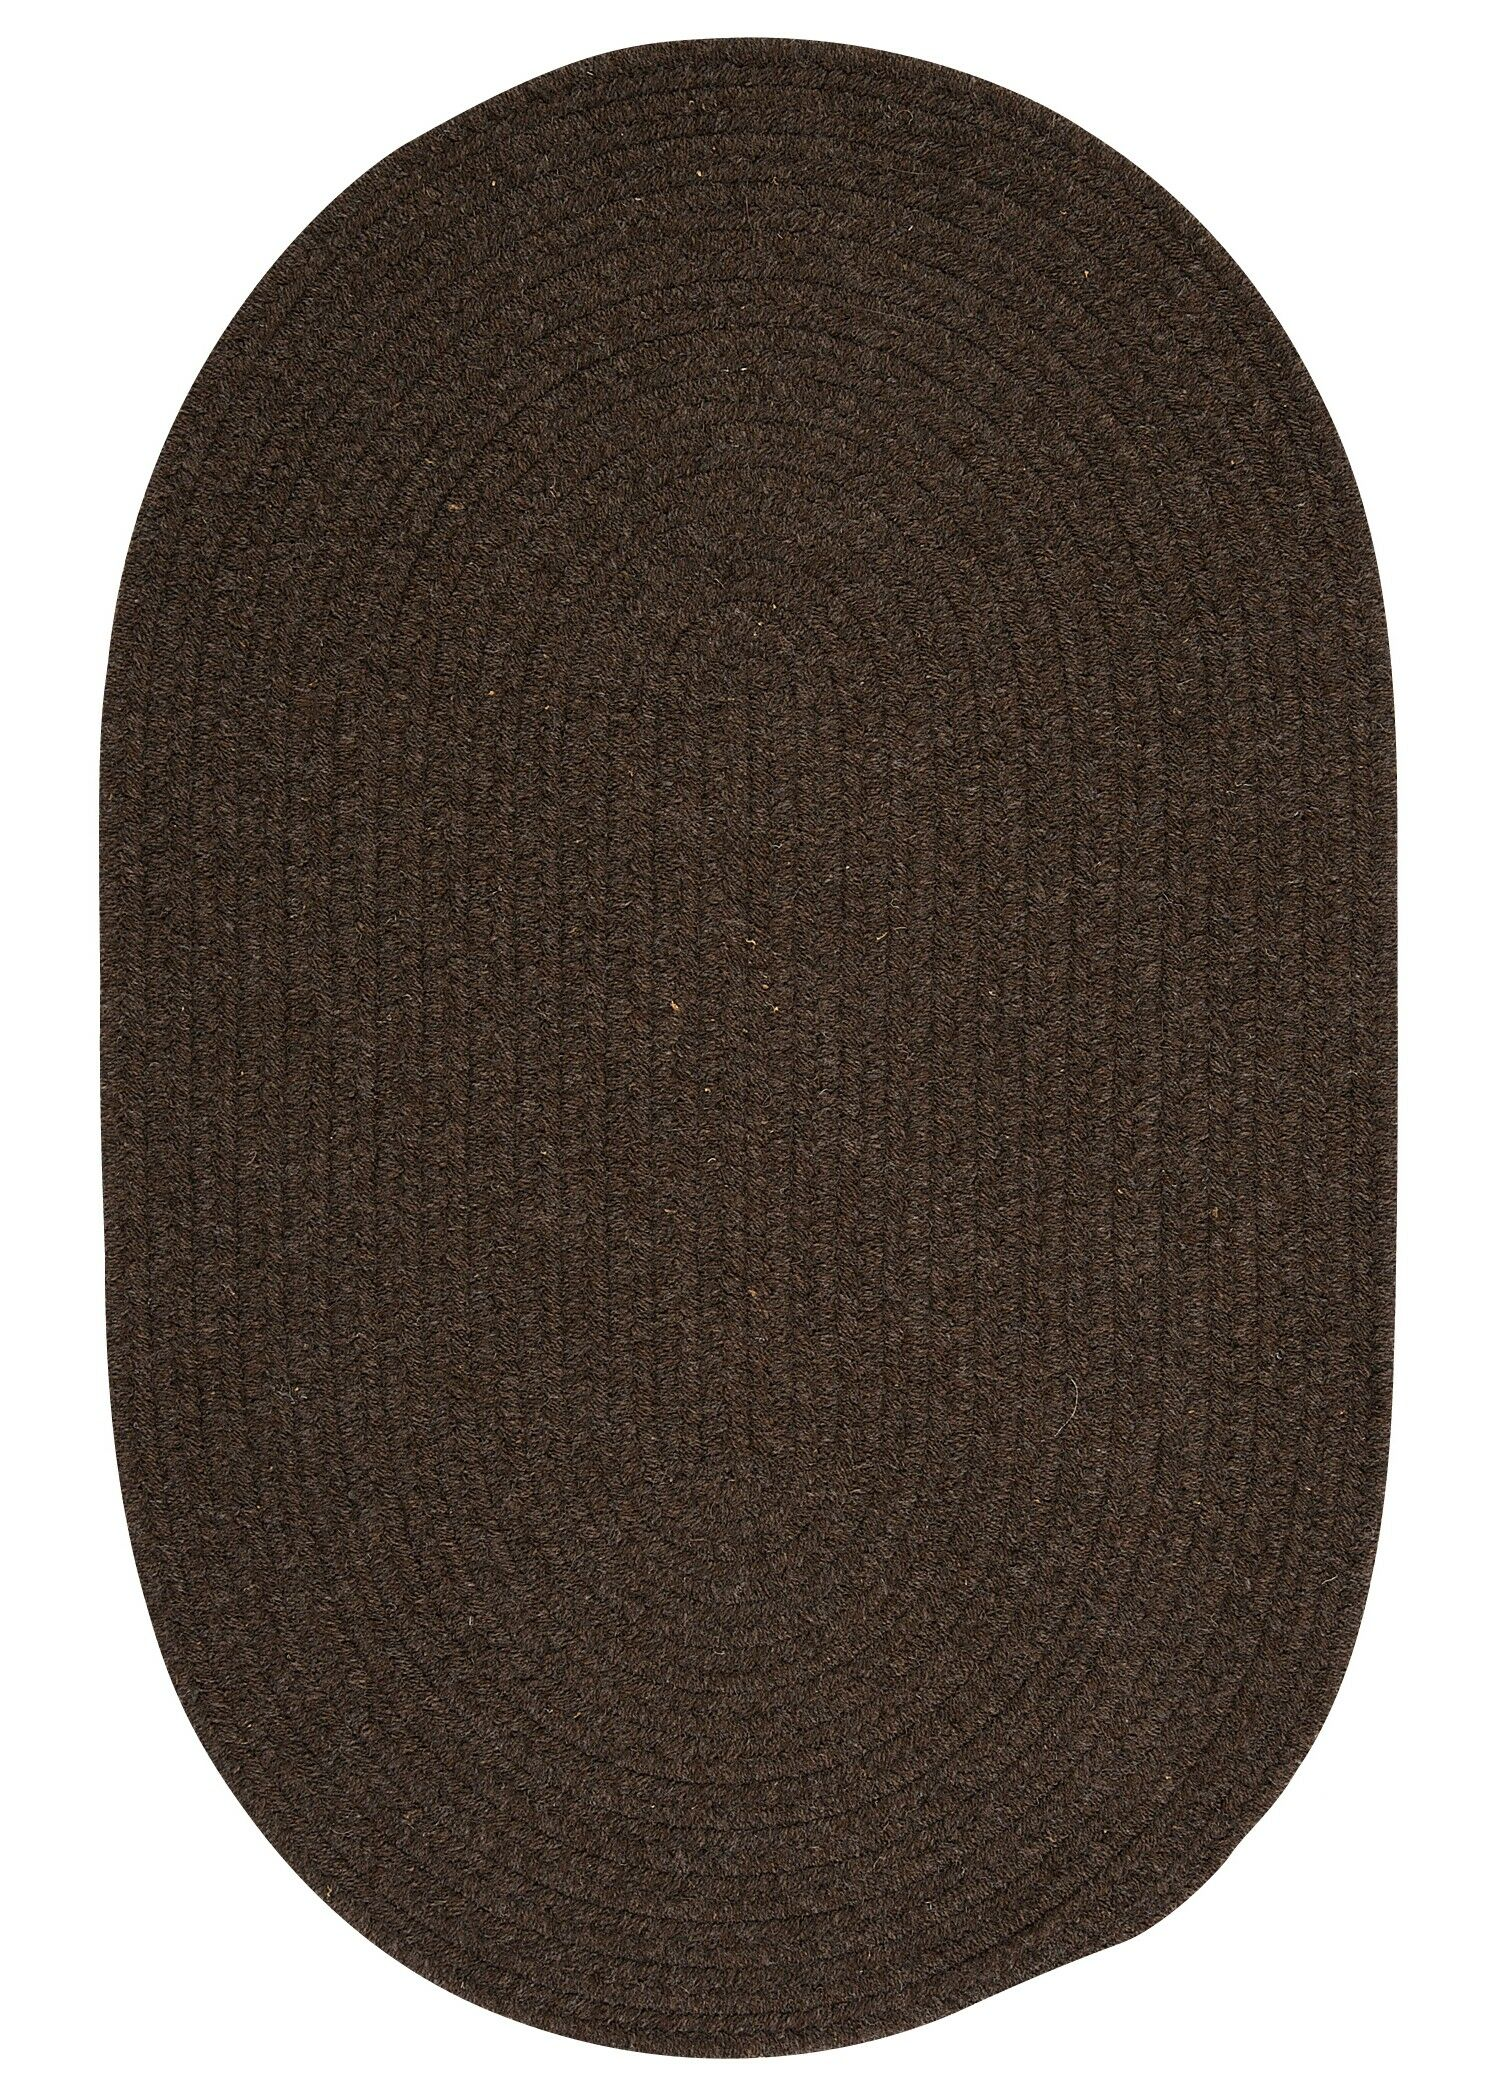 Navarrette Brown Area Rug Rug Size: Oval 12' x 15'